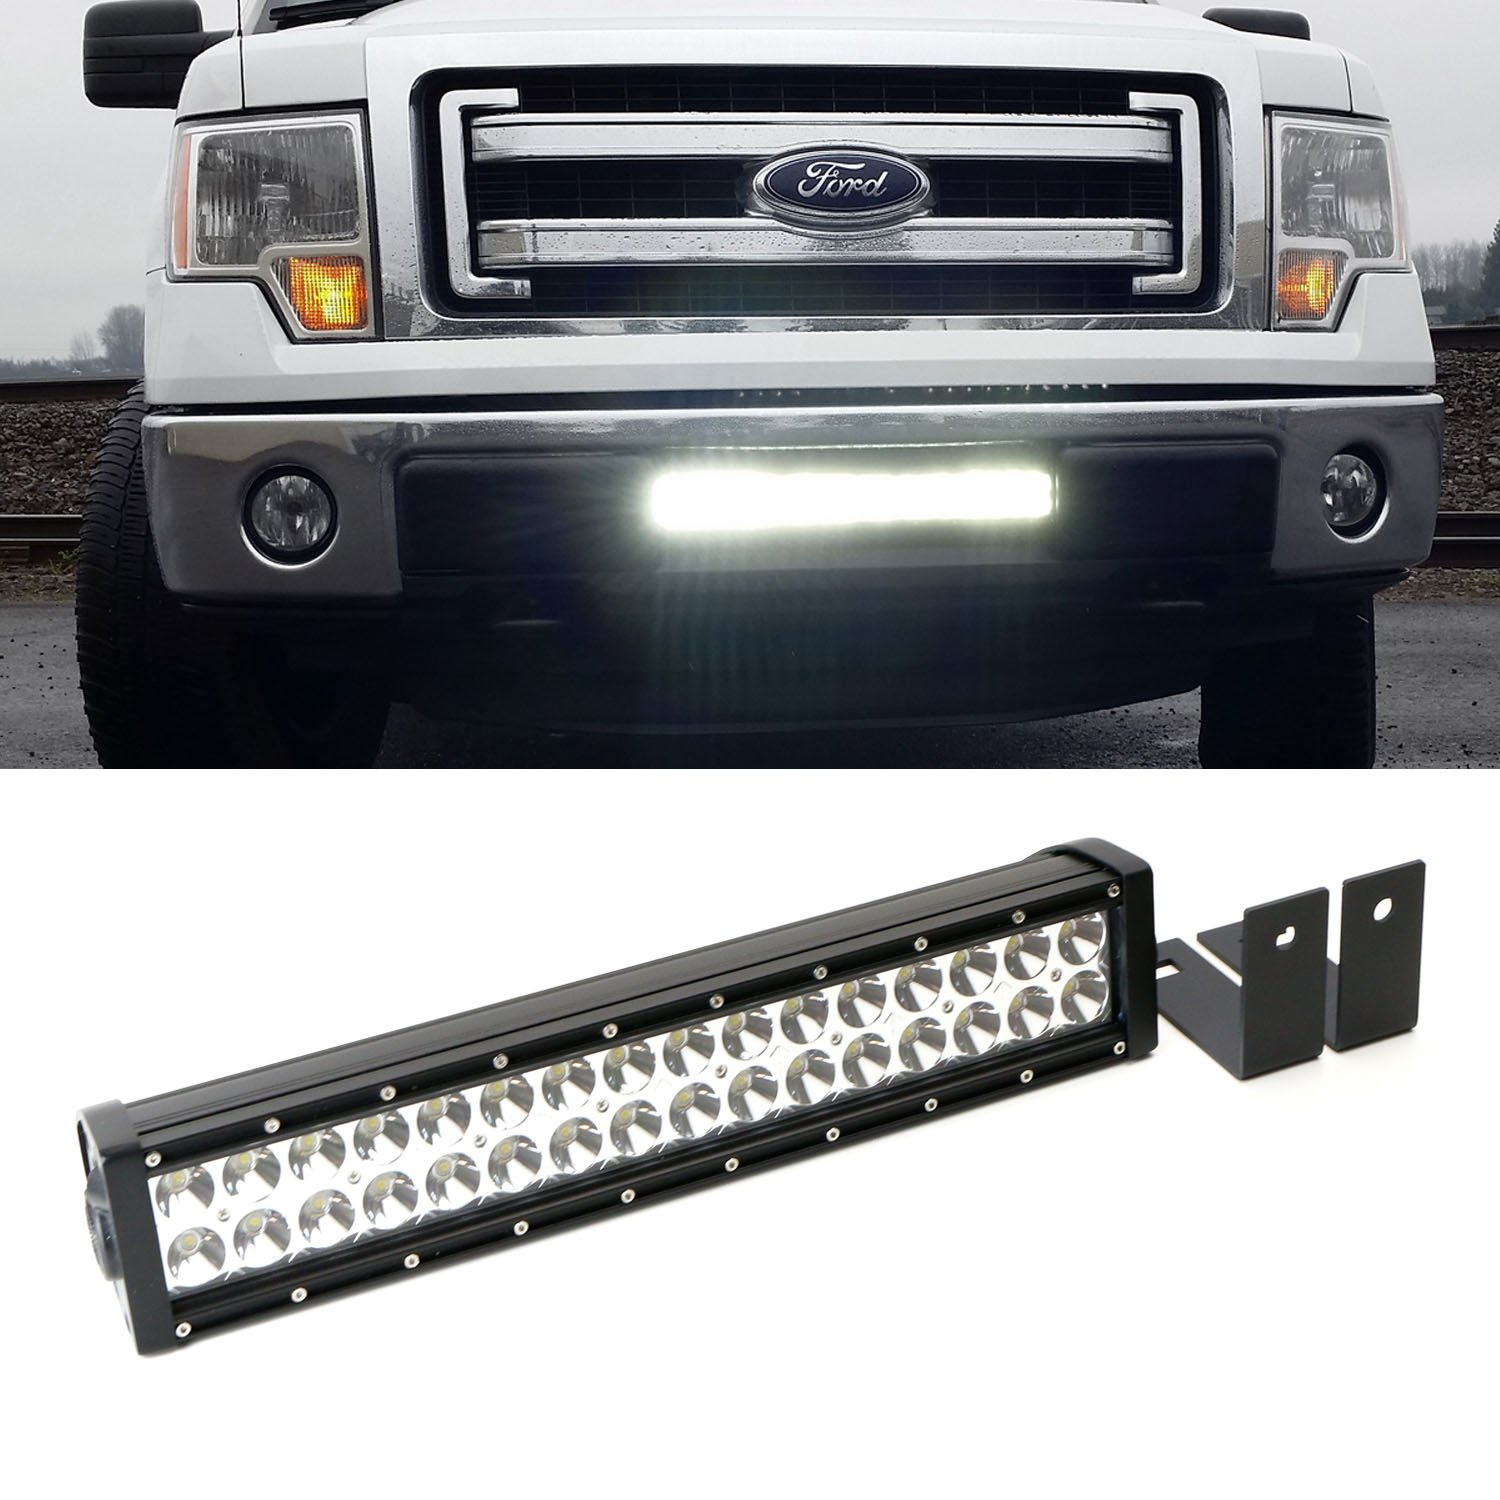 71O0aB9tT5L._SL1500_ amazon com ijdmtoy complete high power led light bar w lower rigid wiring harness for ford raptor at eliteediting.co